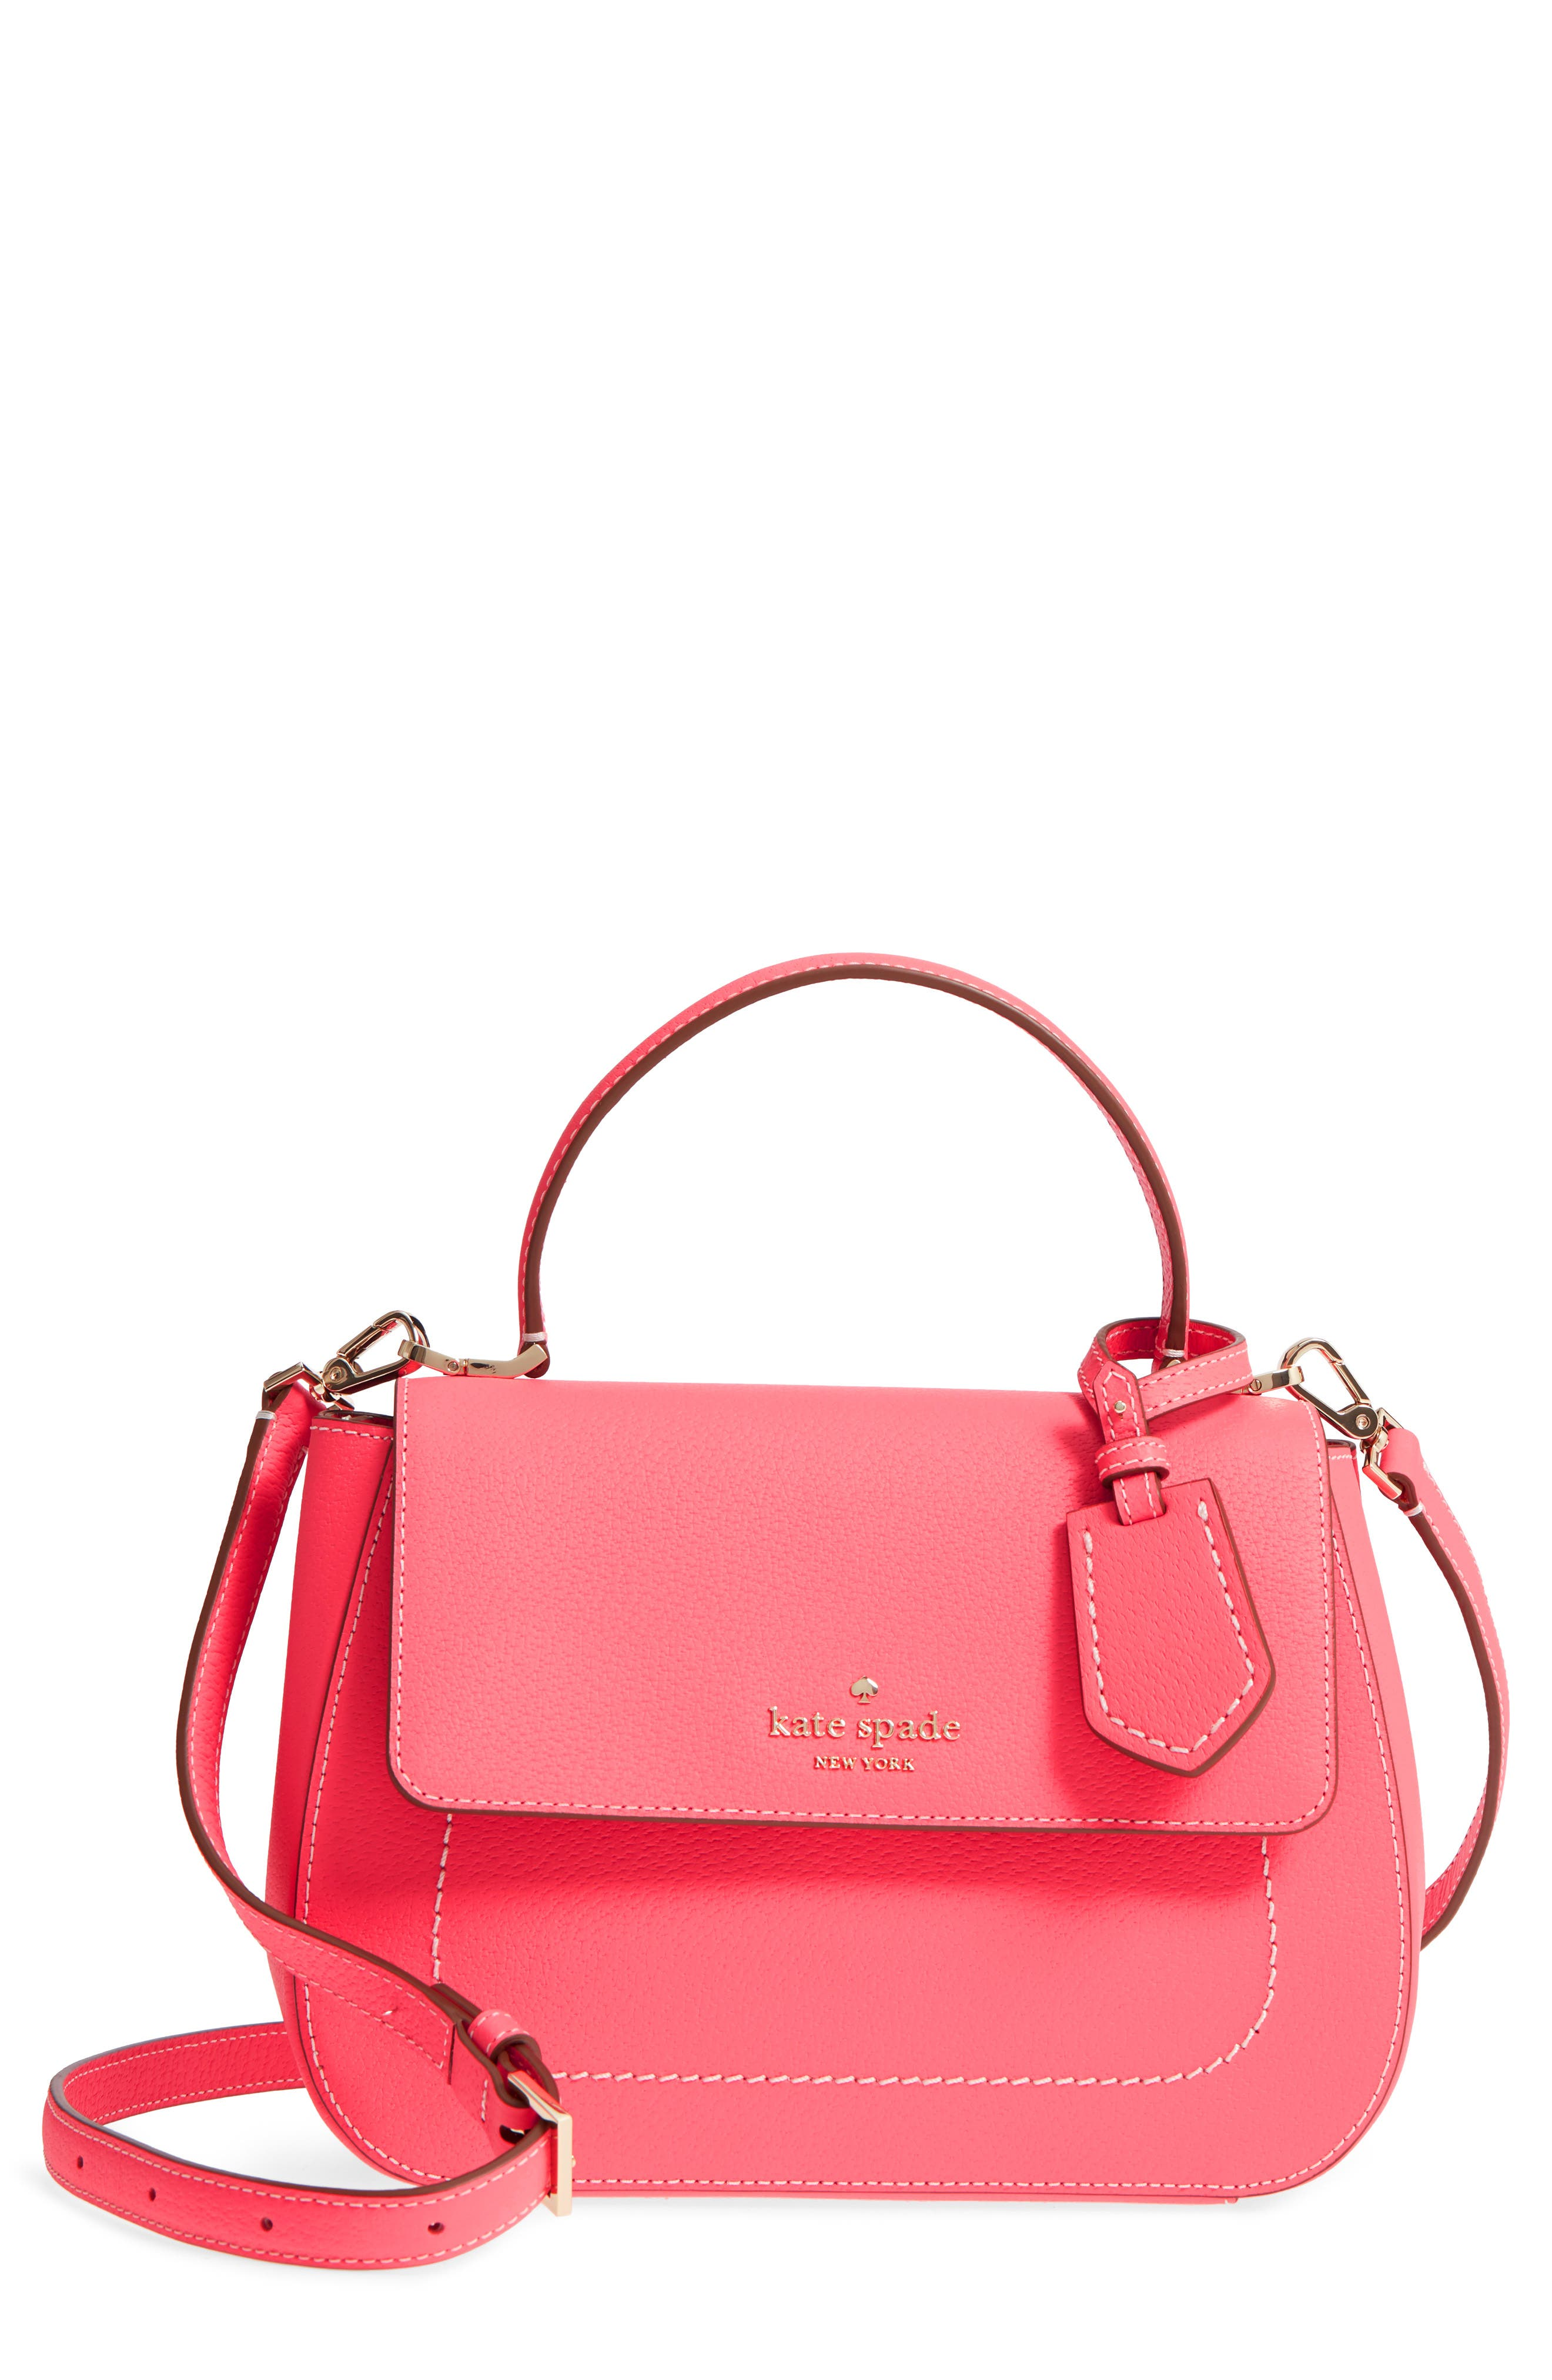 thompson street - justina leather satchel,                         Main,                         color, Bright Flamingo